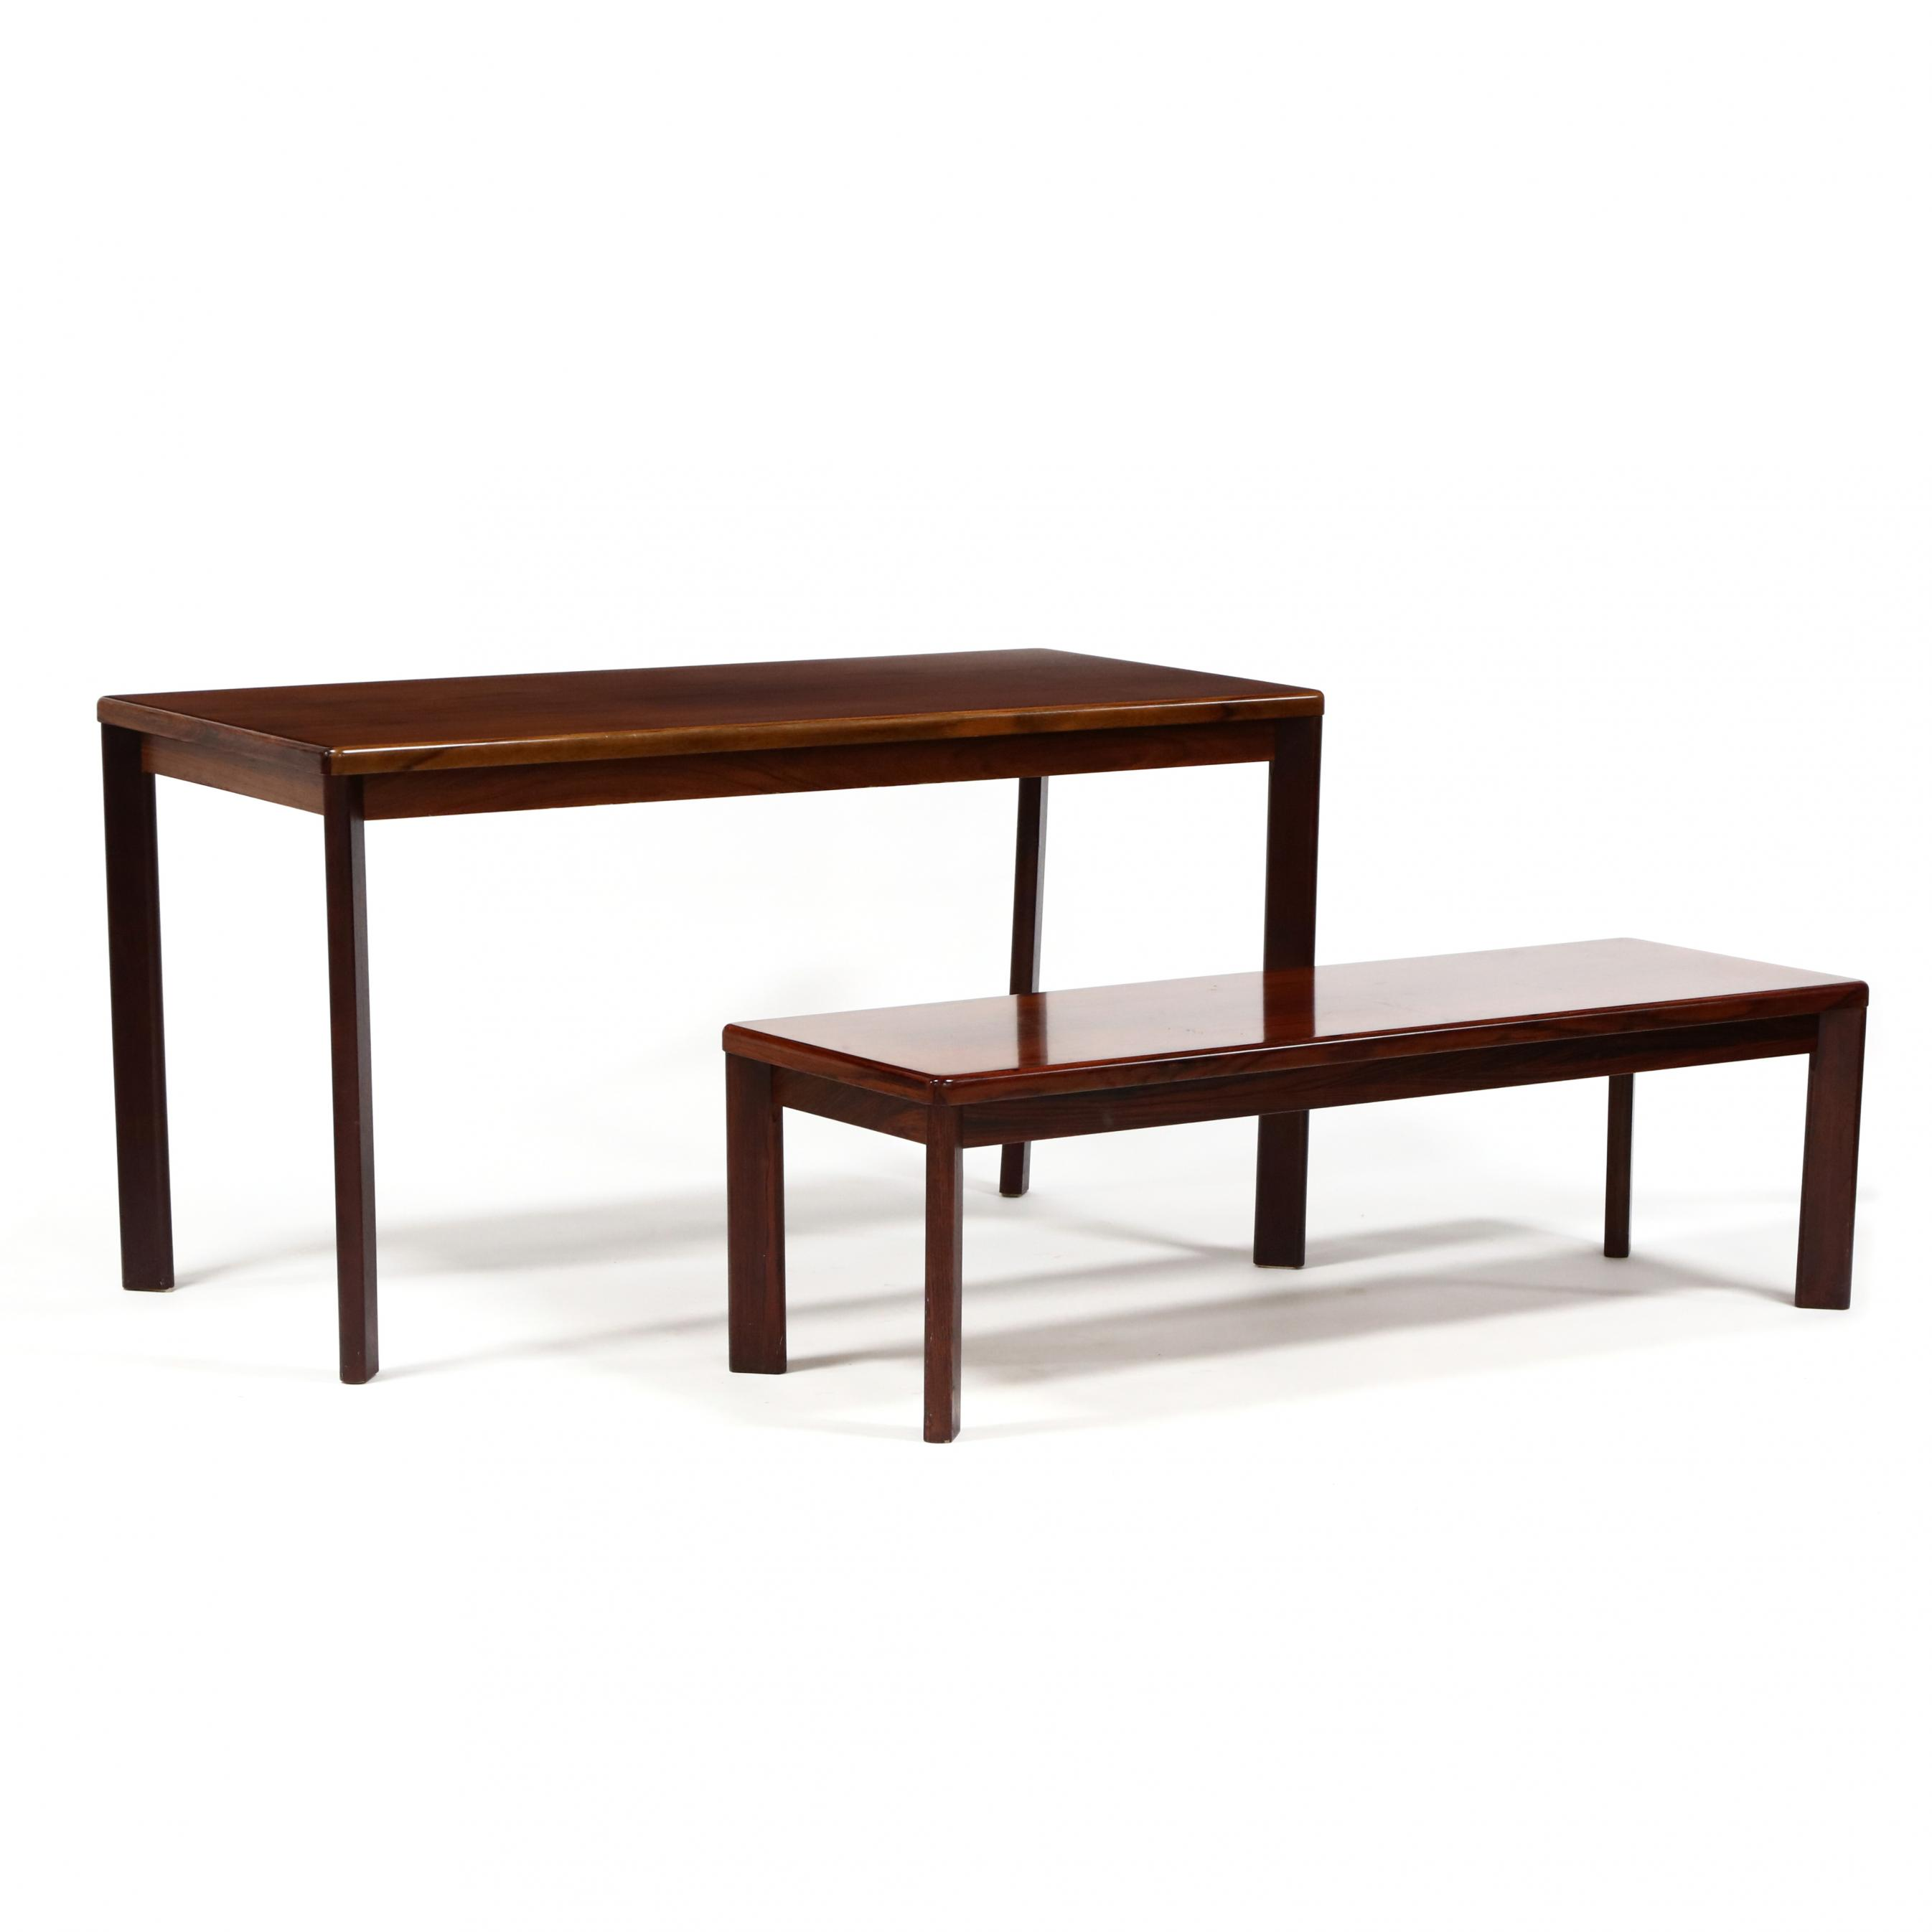 vejle-stole-rosewood-console-and-low-table